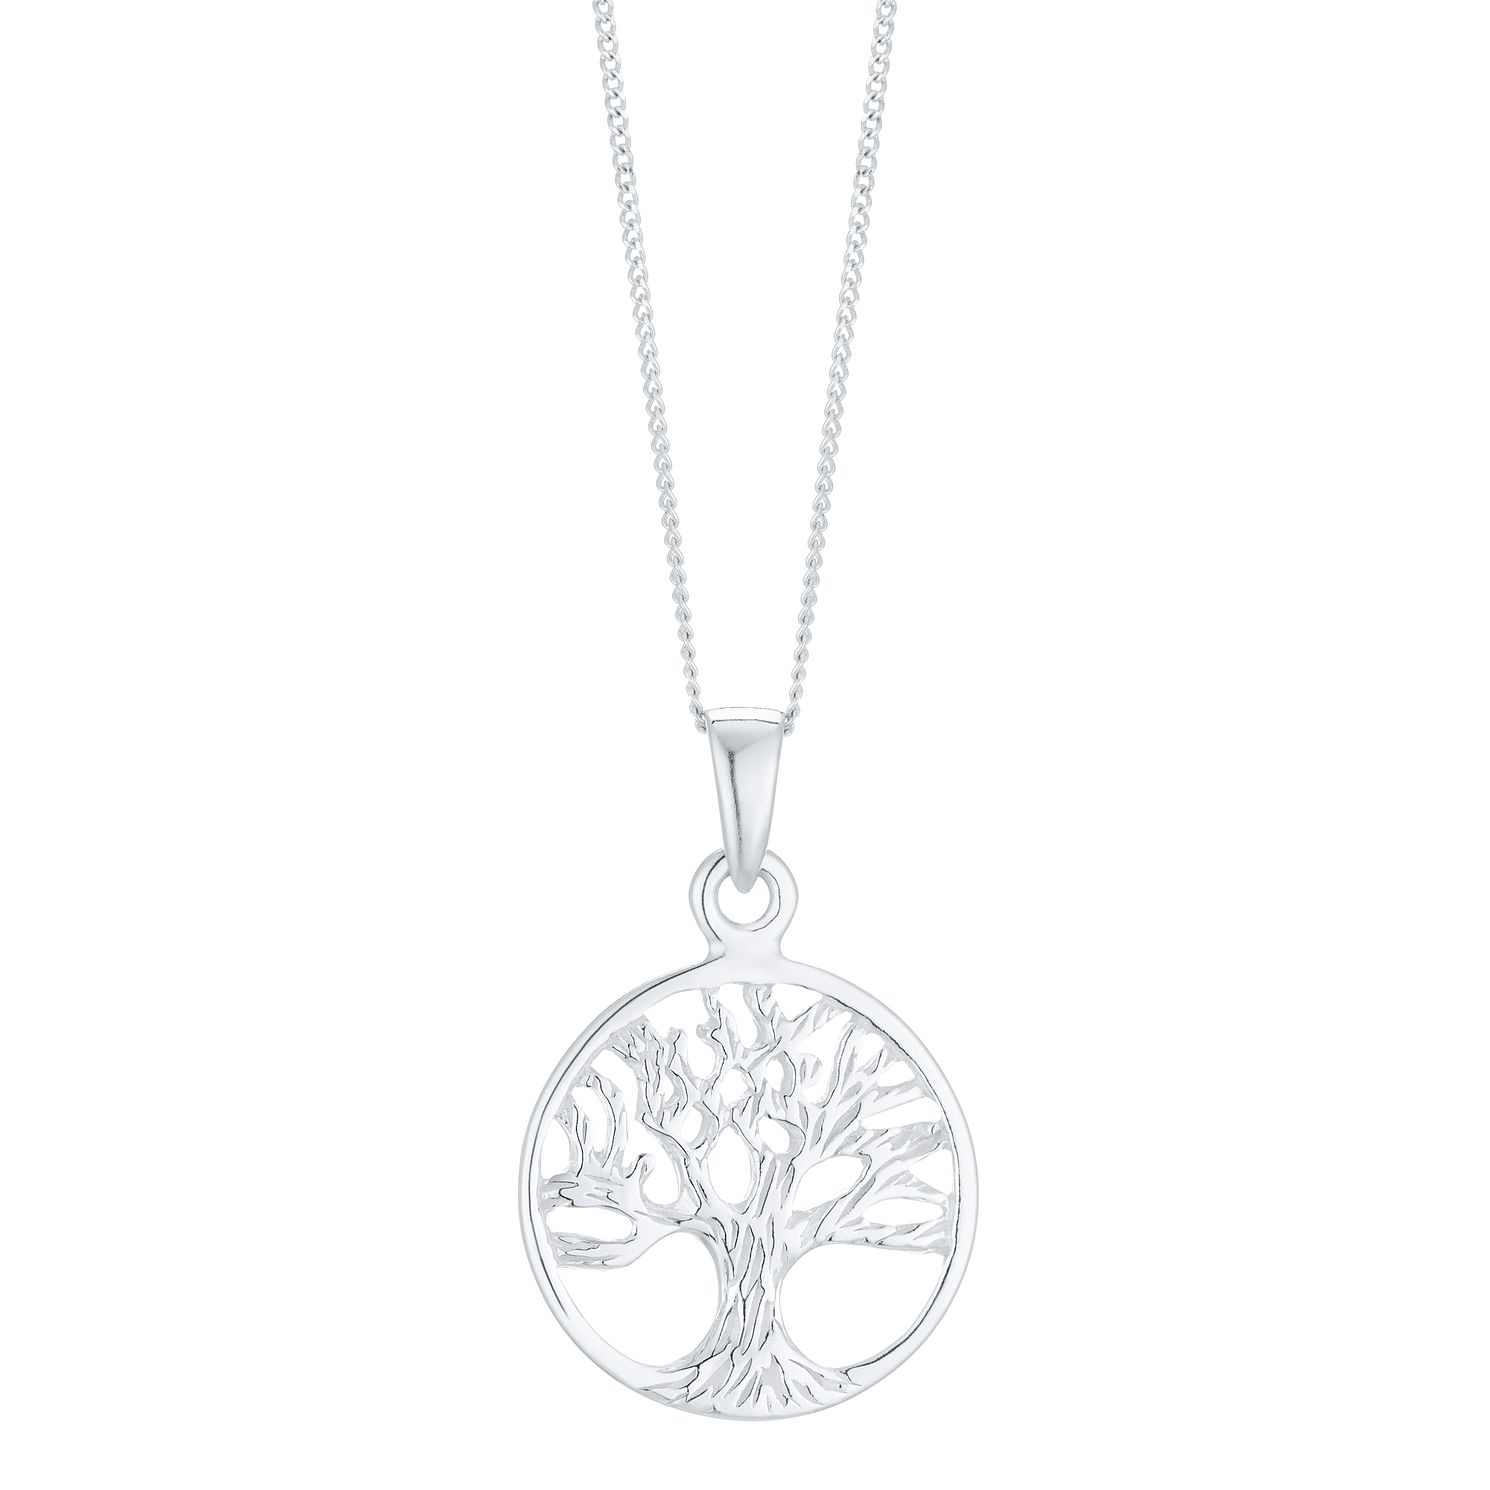 Sterling silver tree of life design pendant hmuel sterling silver tree of life design pendant product number 5326230 aloadofball